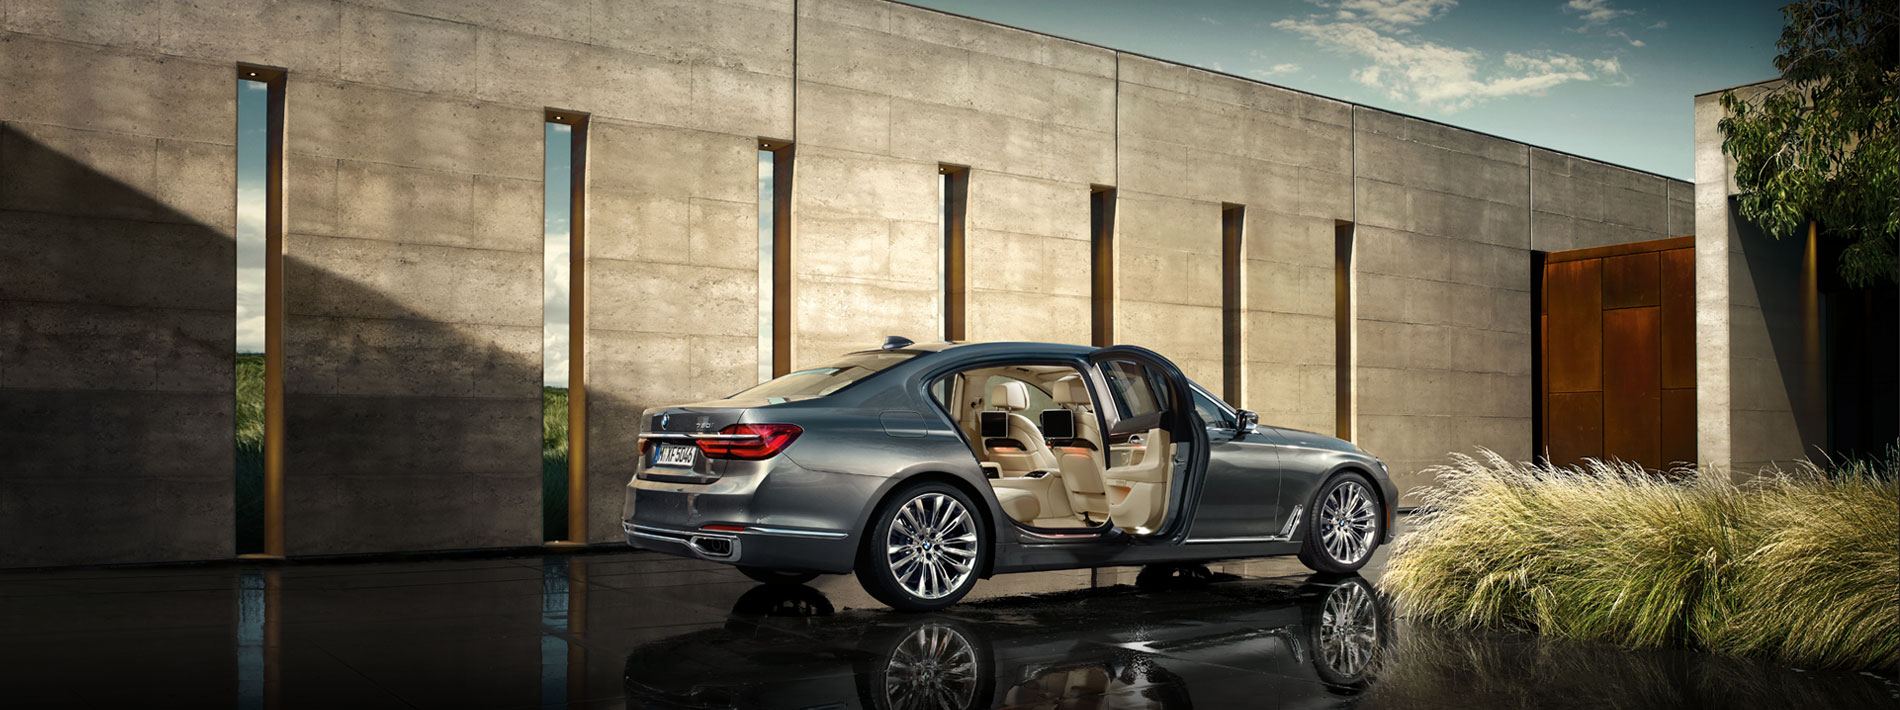 new bmw 7 series lease finance offers doylestown pa. Black Bedroom Furniture Sets. Home Design Ideas